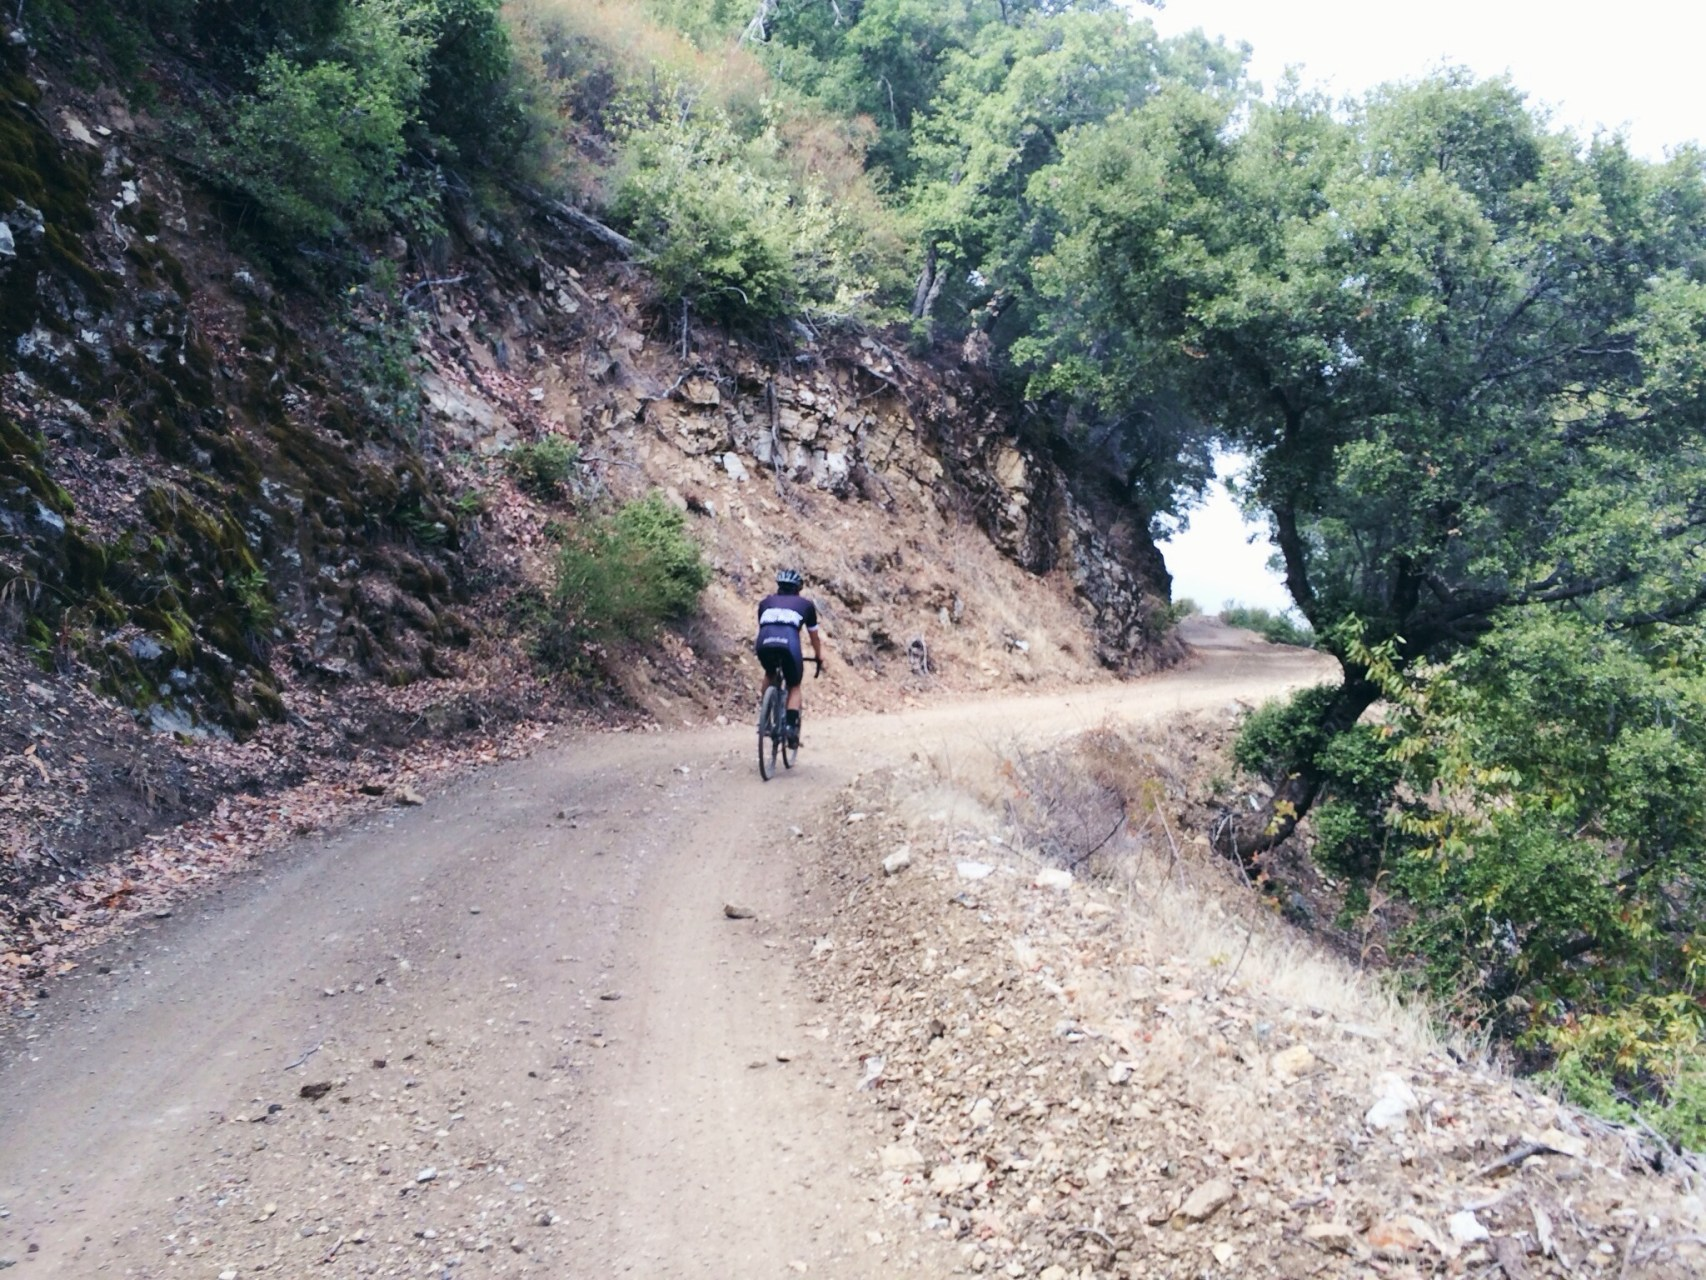 Probably the roughest section of climbing. Loose gravel and very uneven around the corner here.